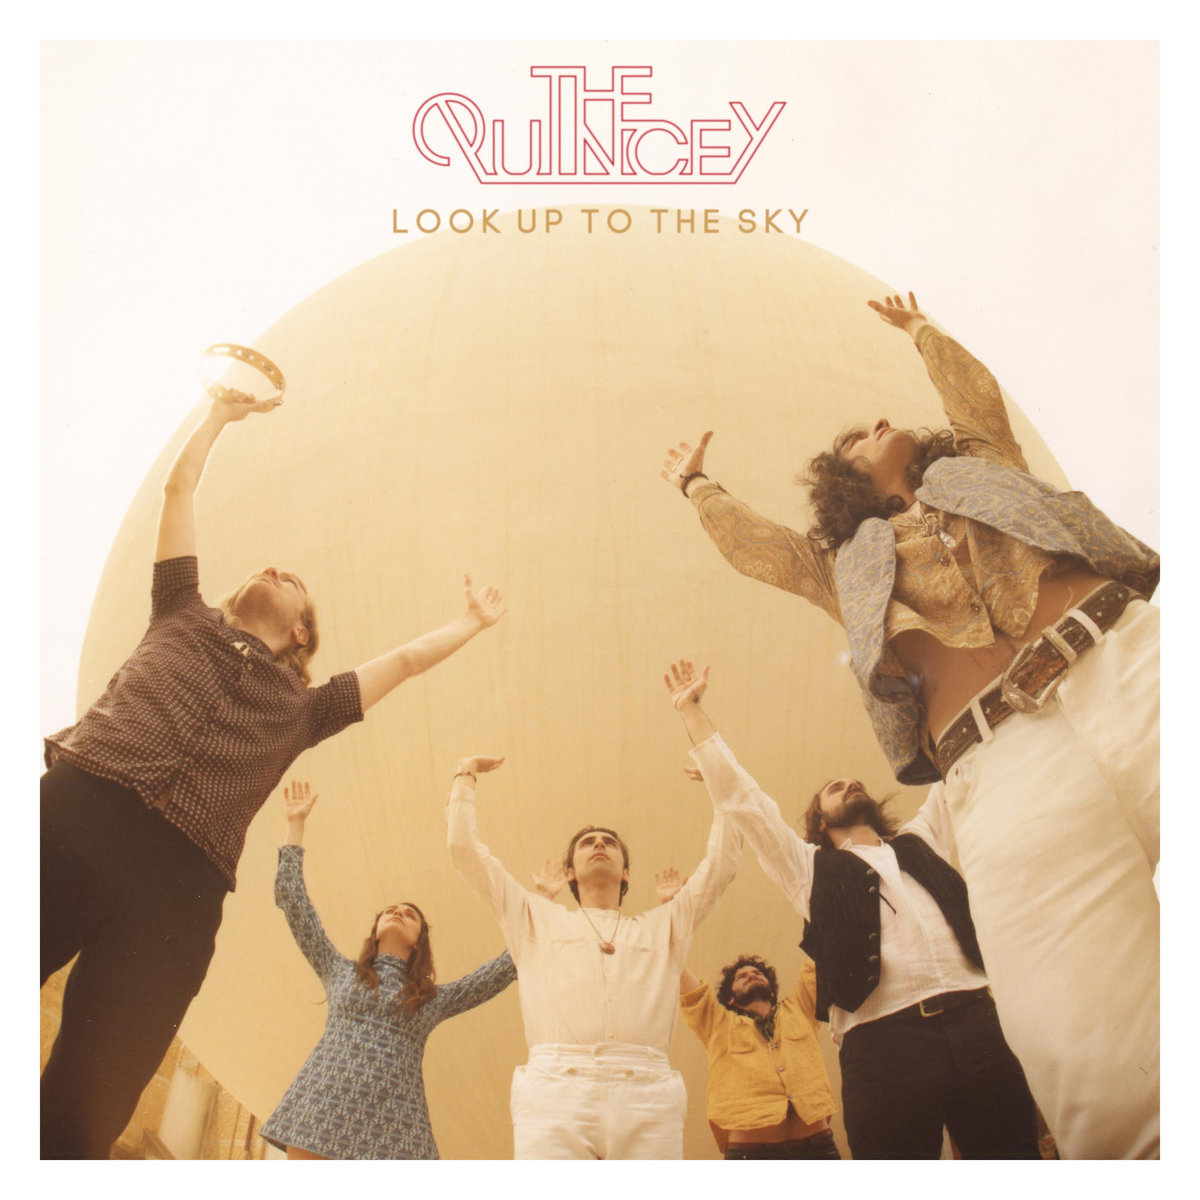 The Quincey - Not Alone @ 'Look Up To The Sky' album (alternative, united kingdom)